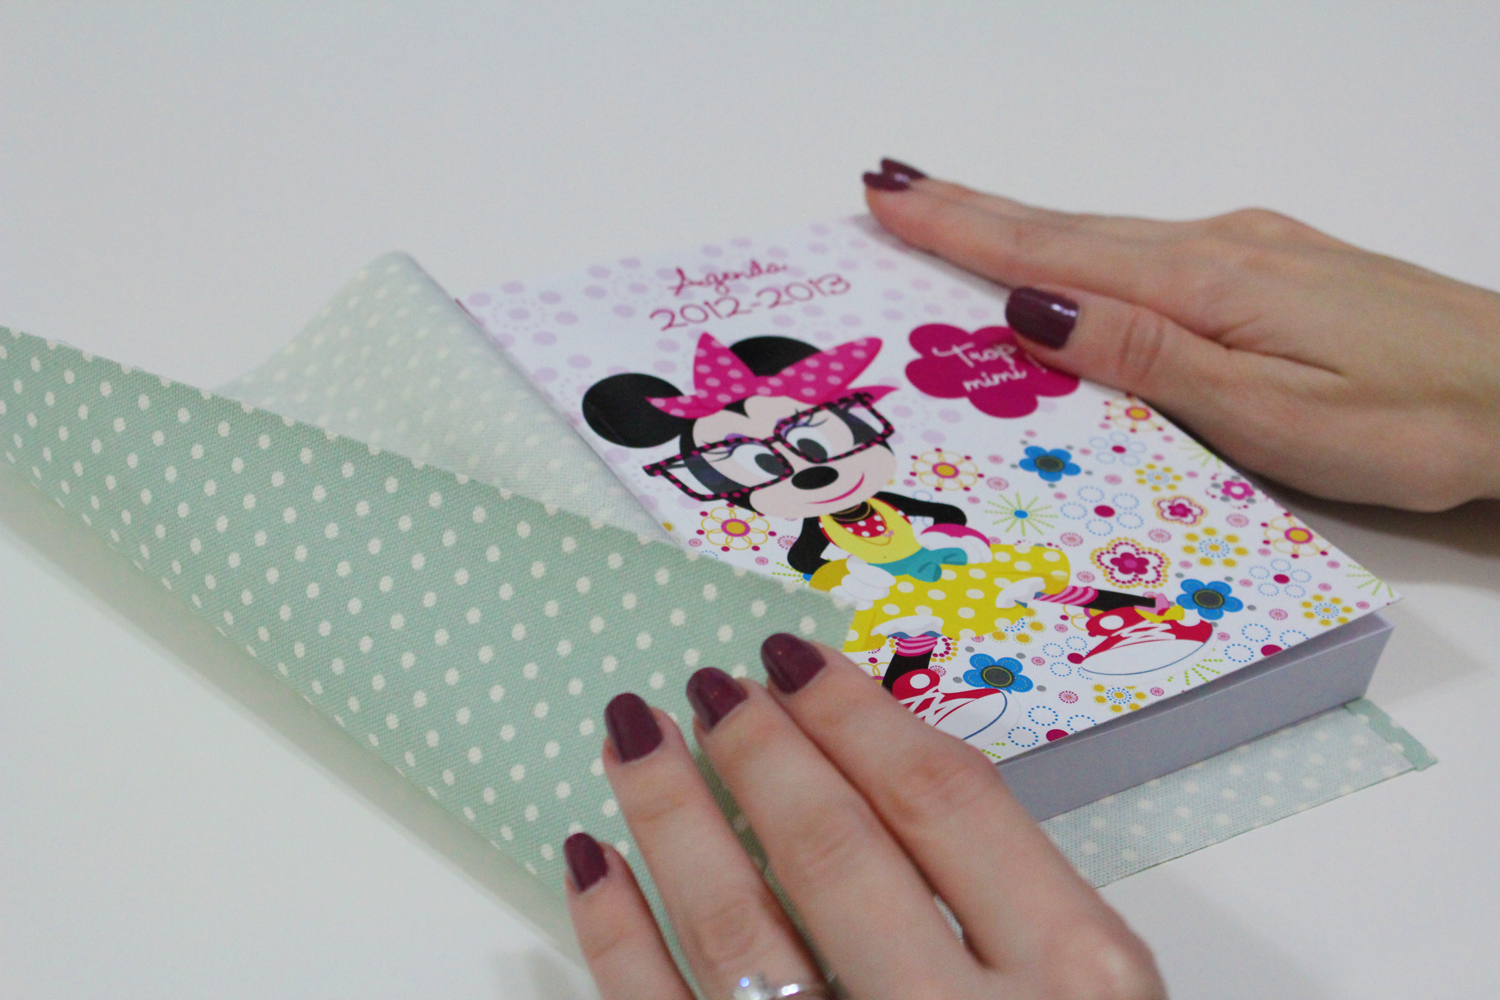 Change Book Cover Diy : Xenia olivia diy book cover with dailylike